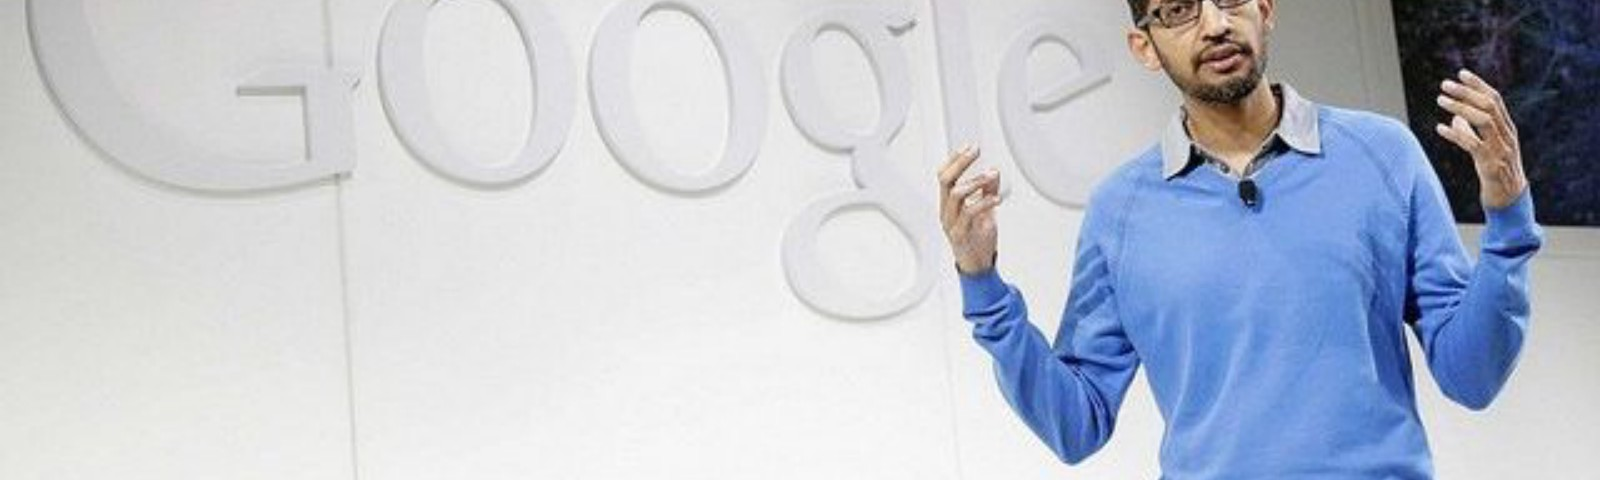 Latest CEO Insights On Investing In The Future From Sundar Pichai, Jack Dorsey & More